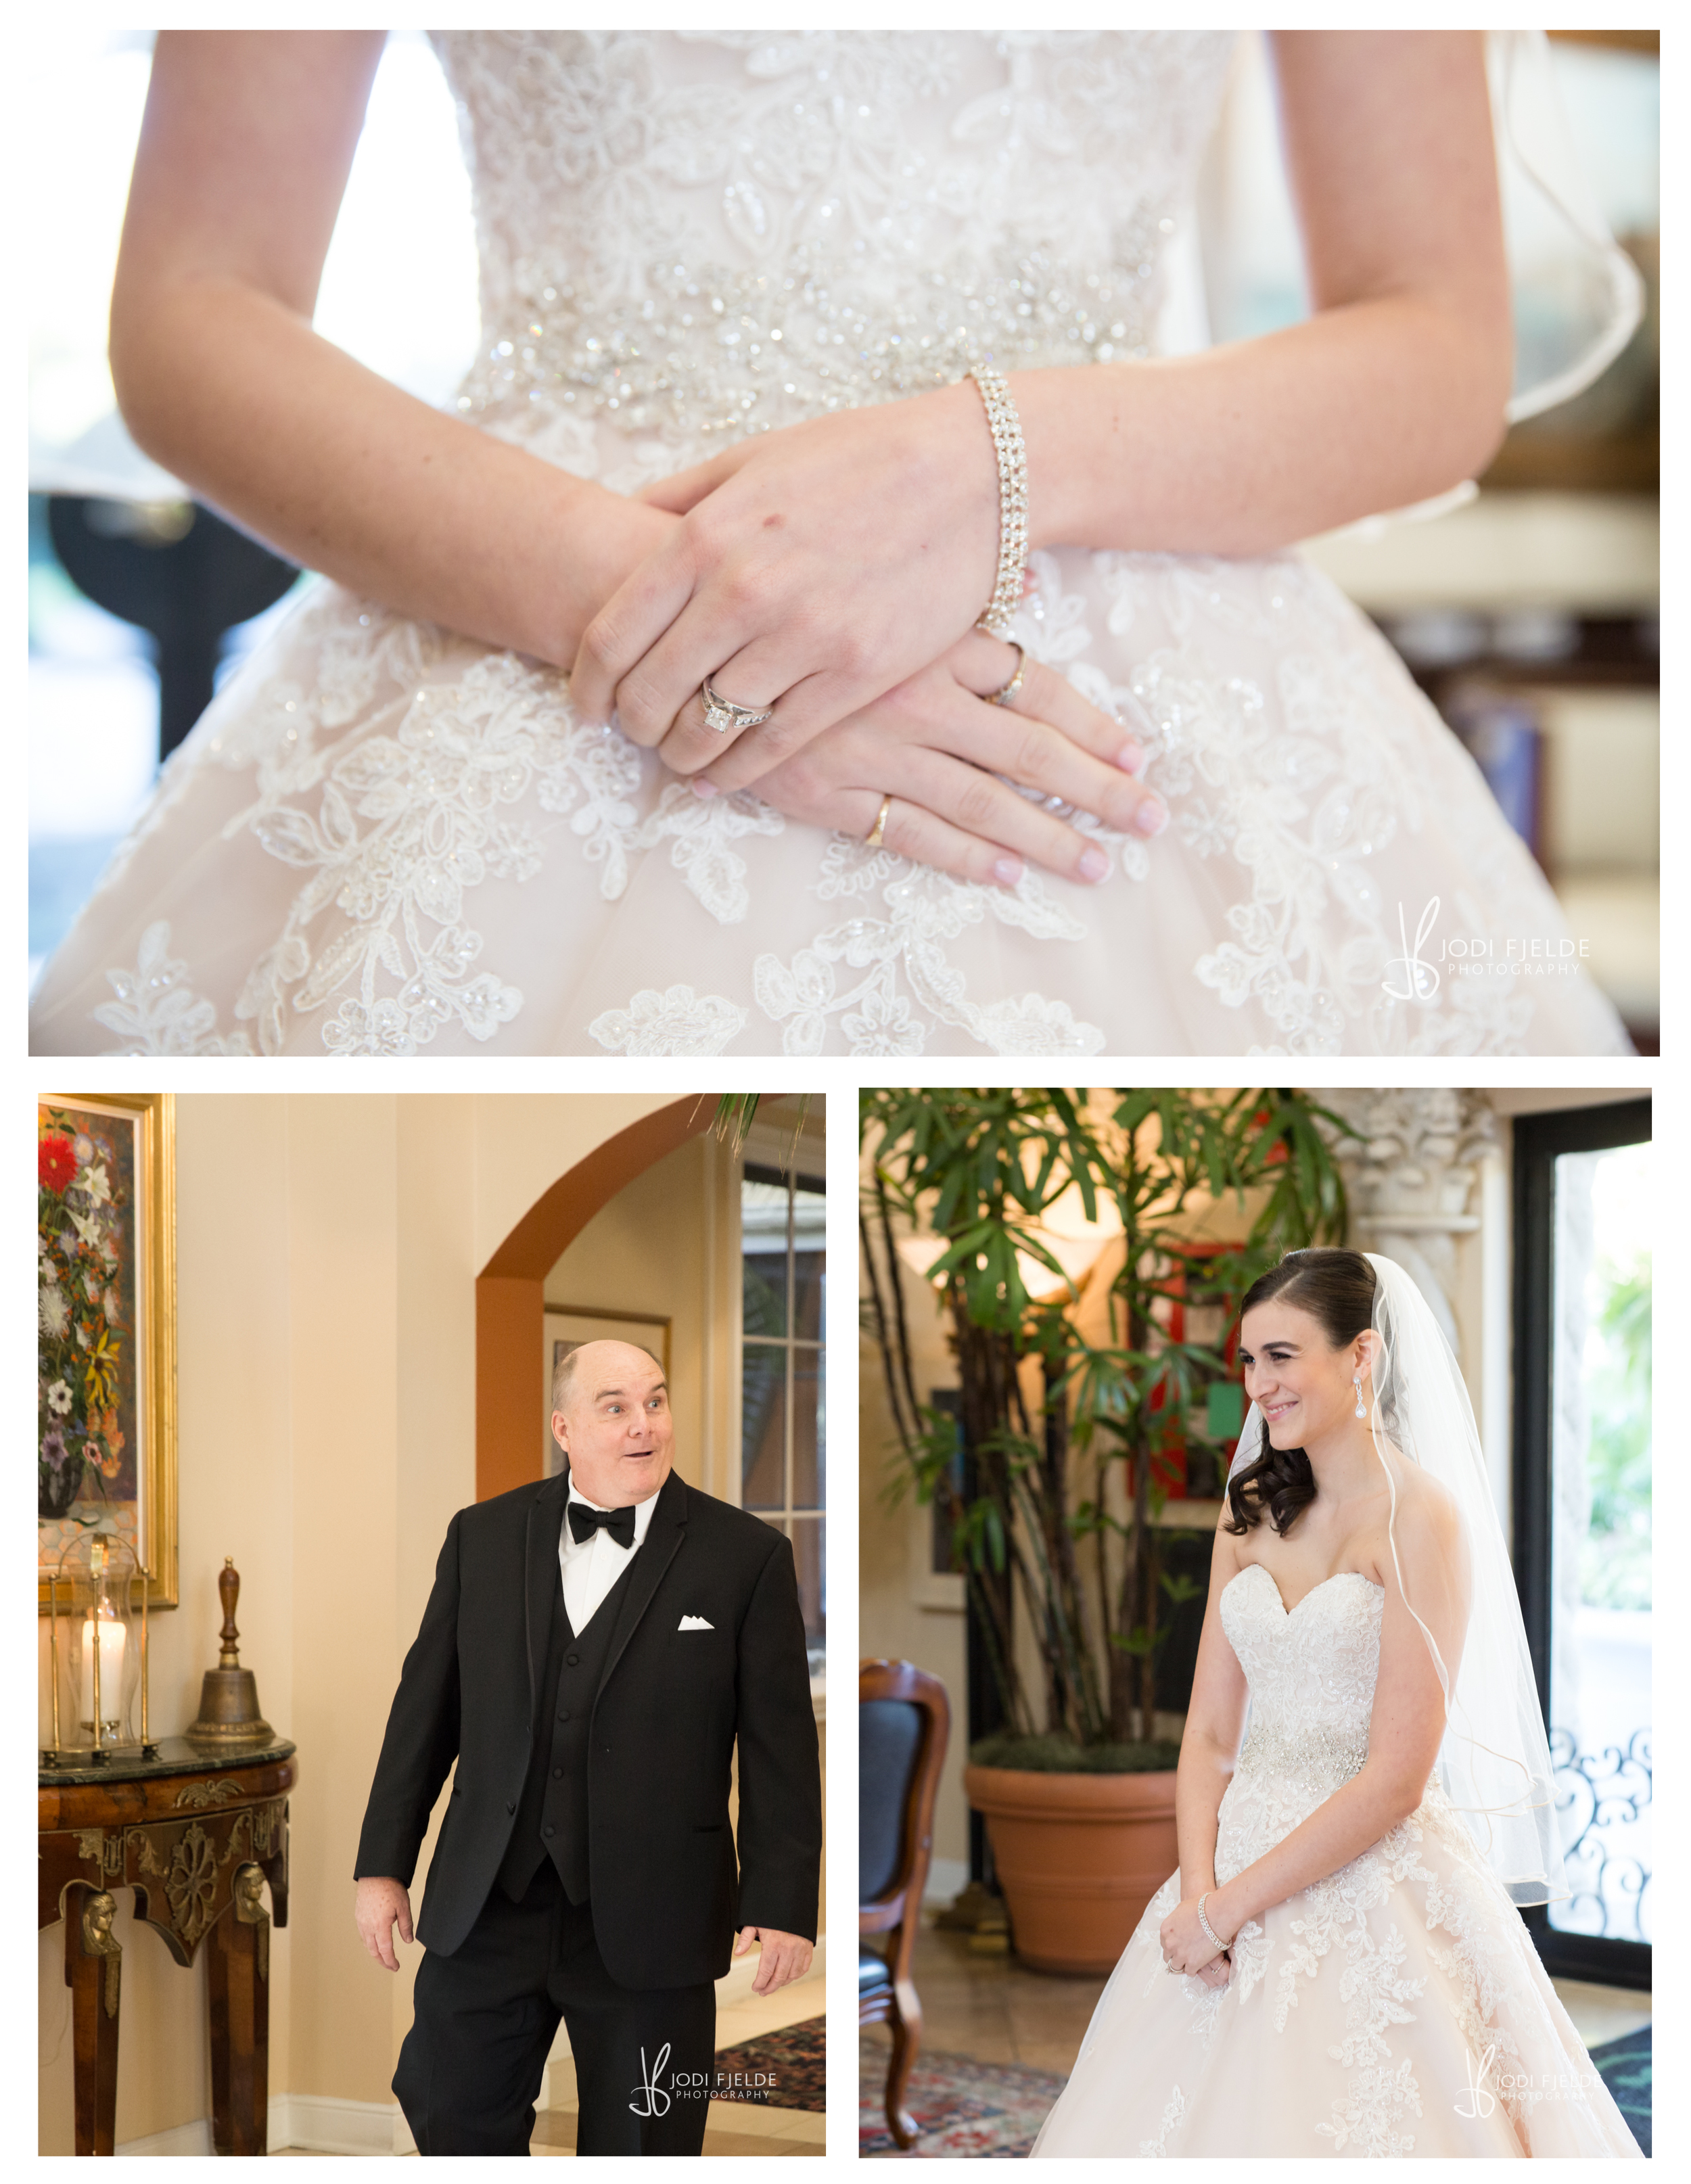 Benvenuto_Palm_Beach_Wedding_Jewish_Michelle & Jason_Jodi_Fjedle_Photography 19.jpg